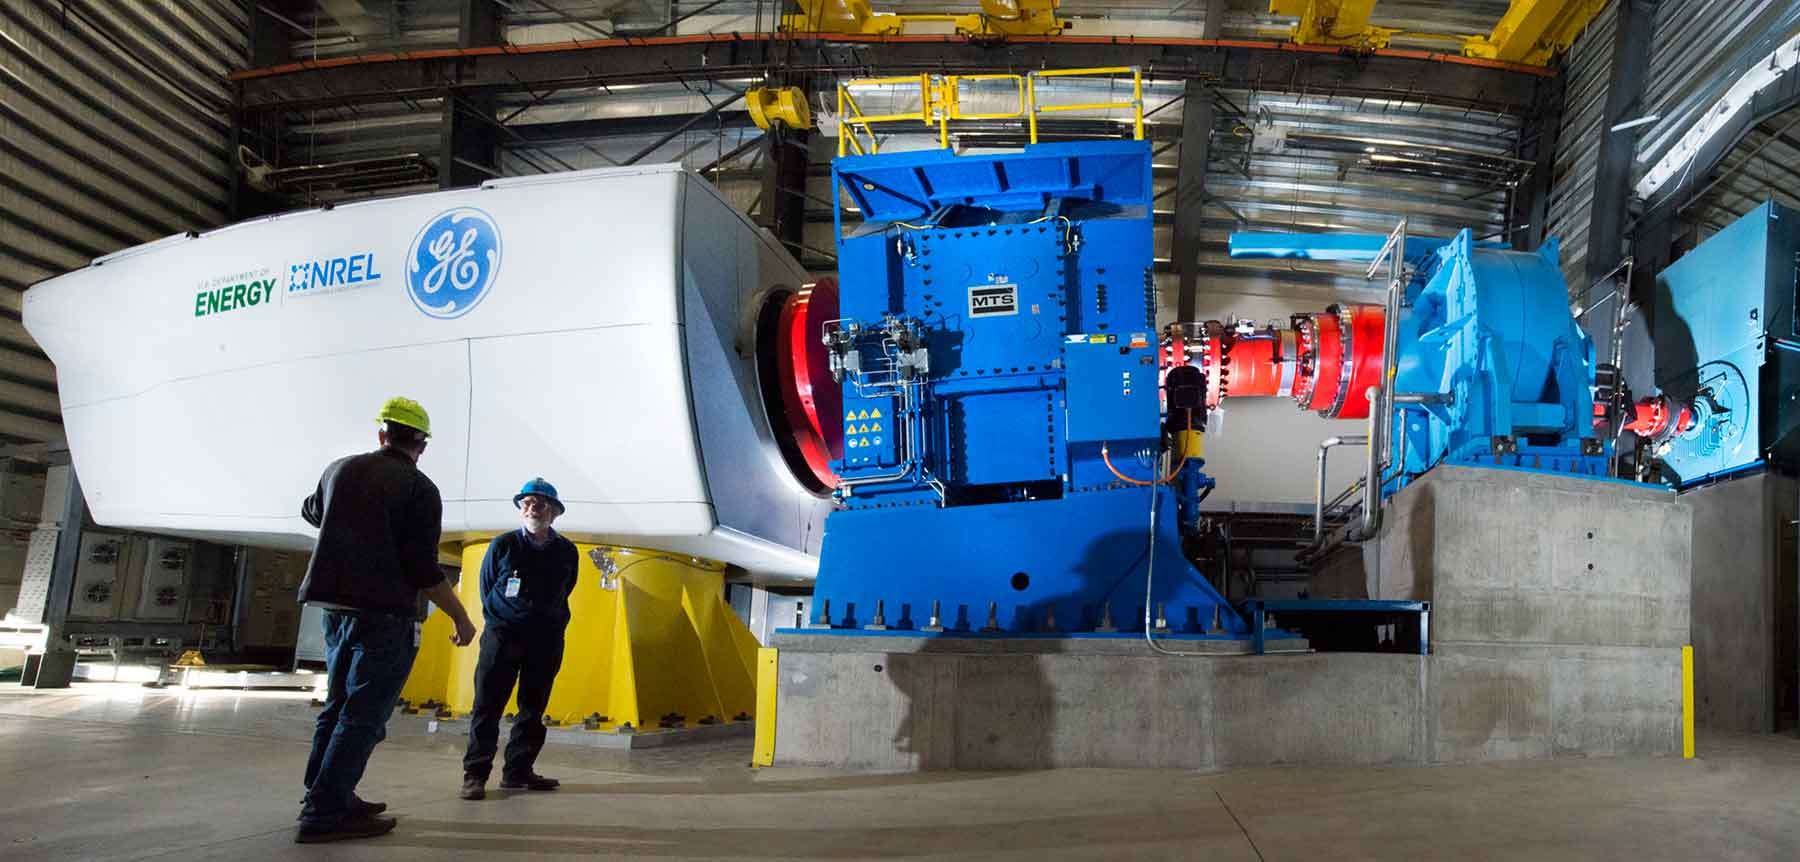 Two men in hardhats and safety glasses stand in front of equipment having a conversation. The blue and white dynamometer equipment has a white wind turbine drivetrain attached to it for testing.